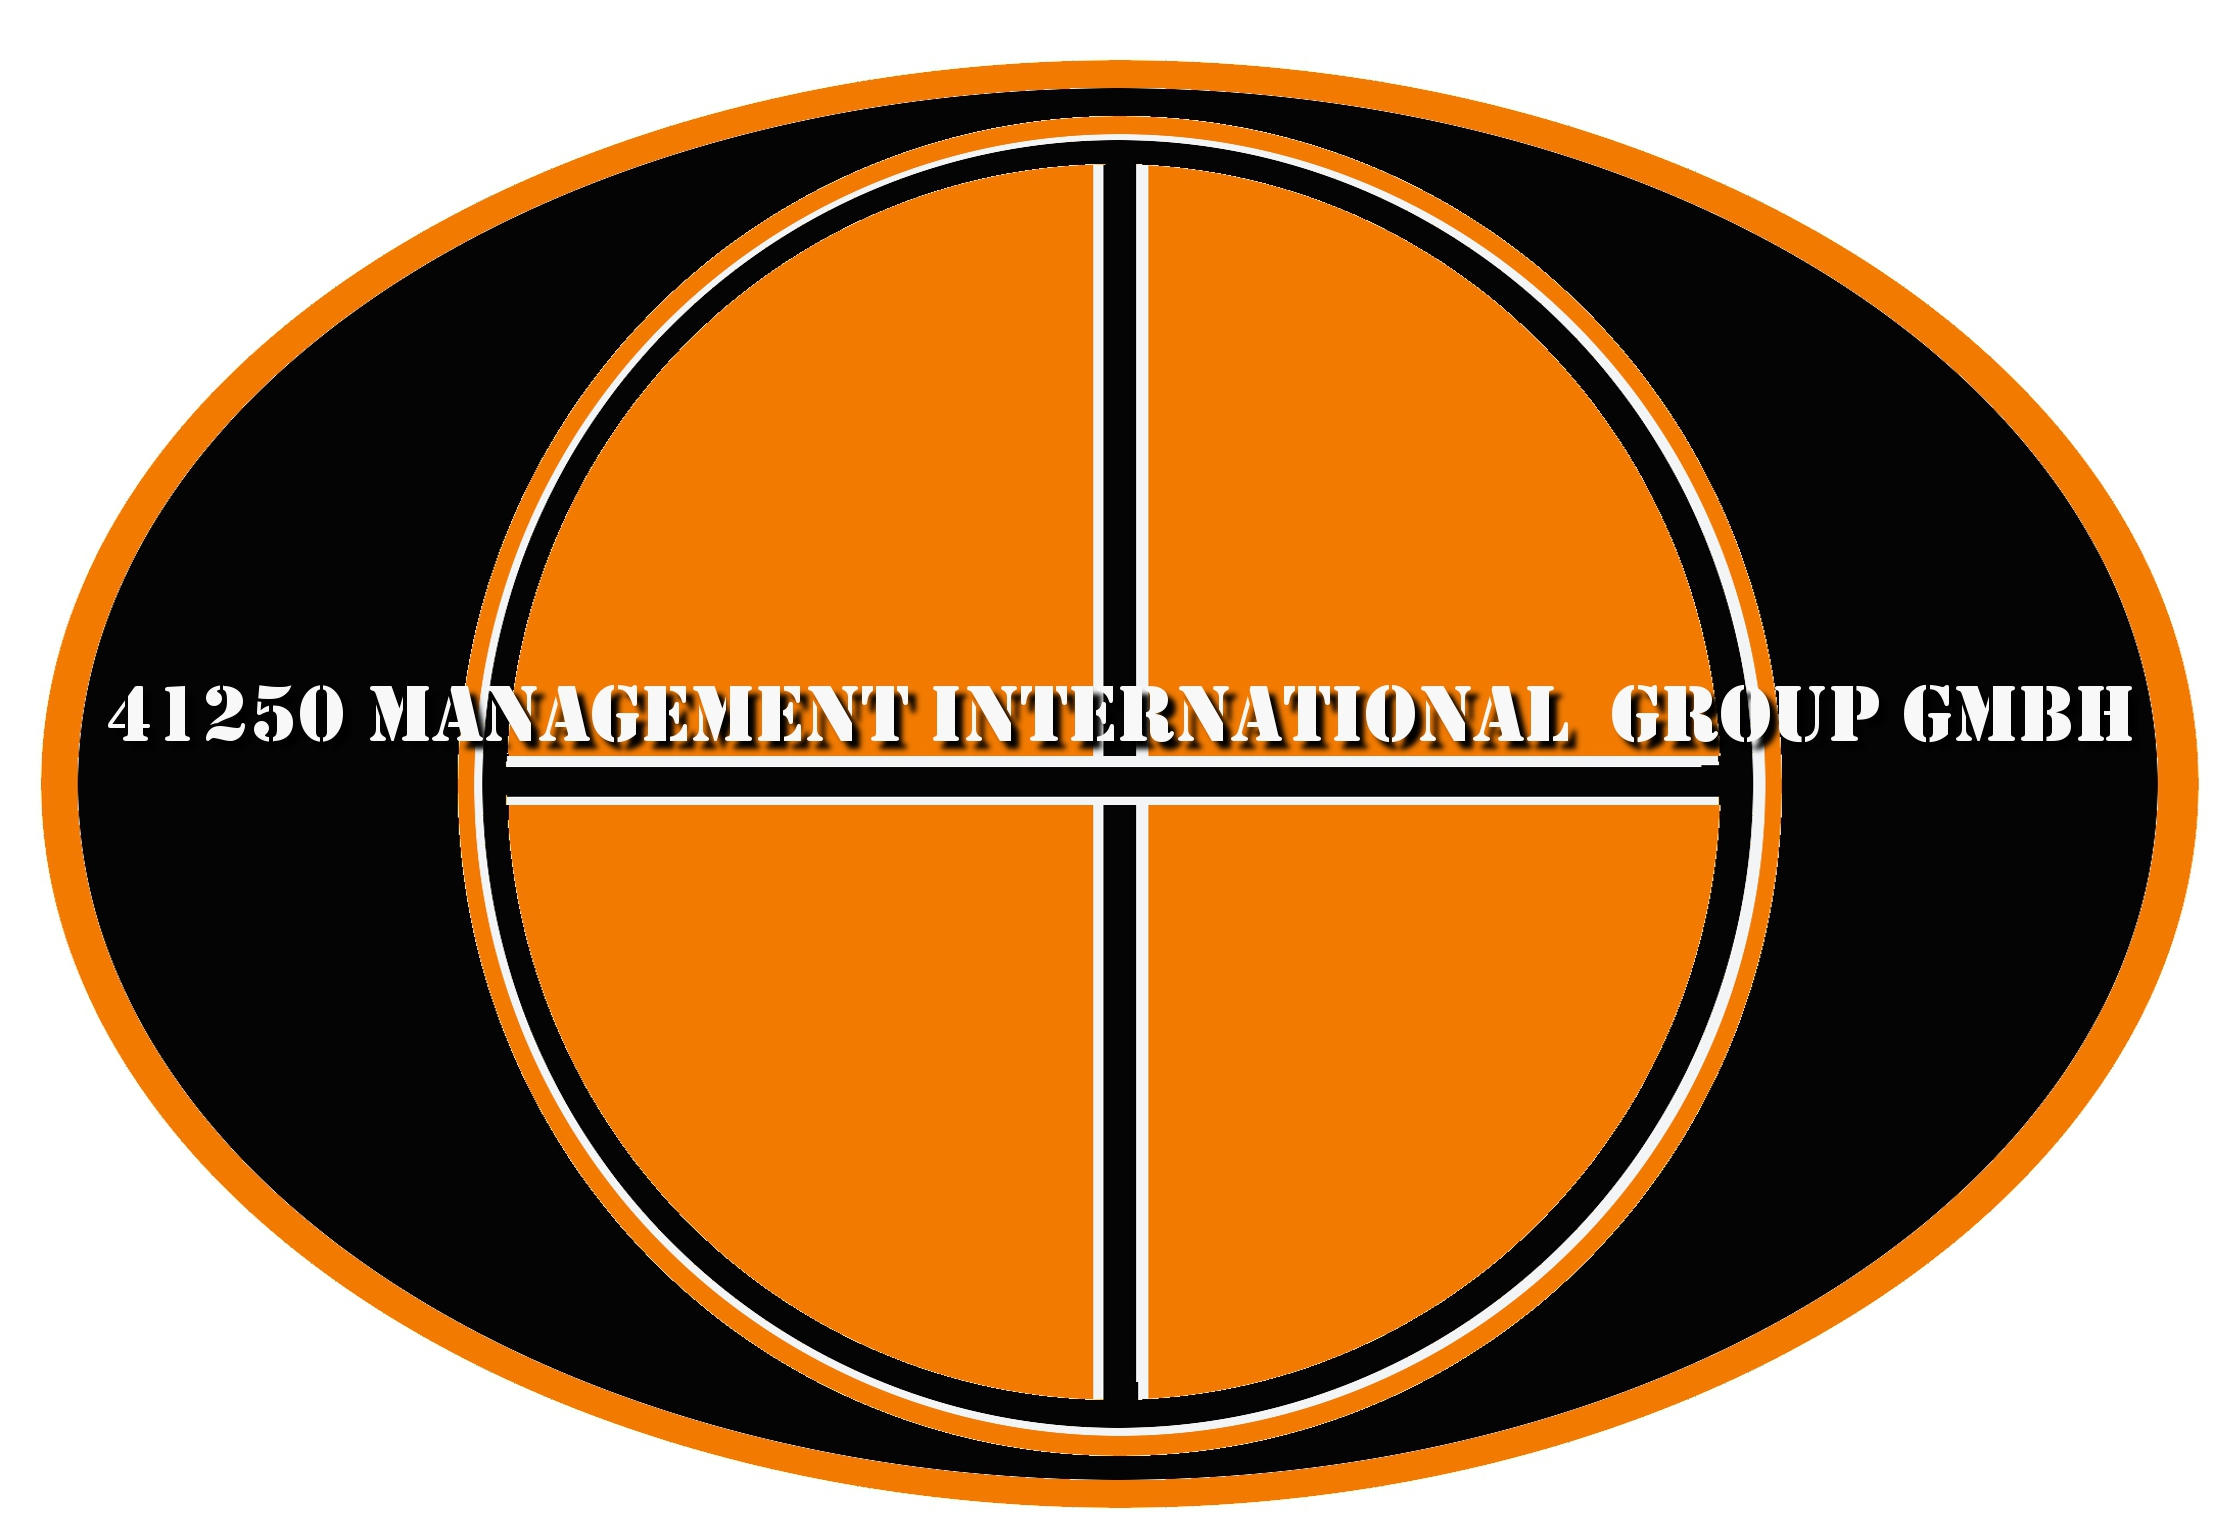 41250 Management International Group GmbH